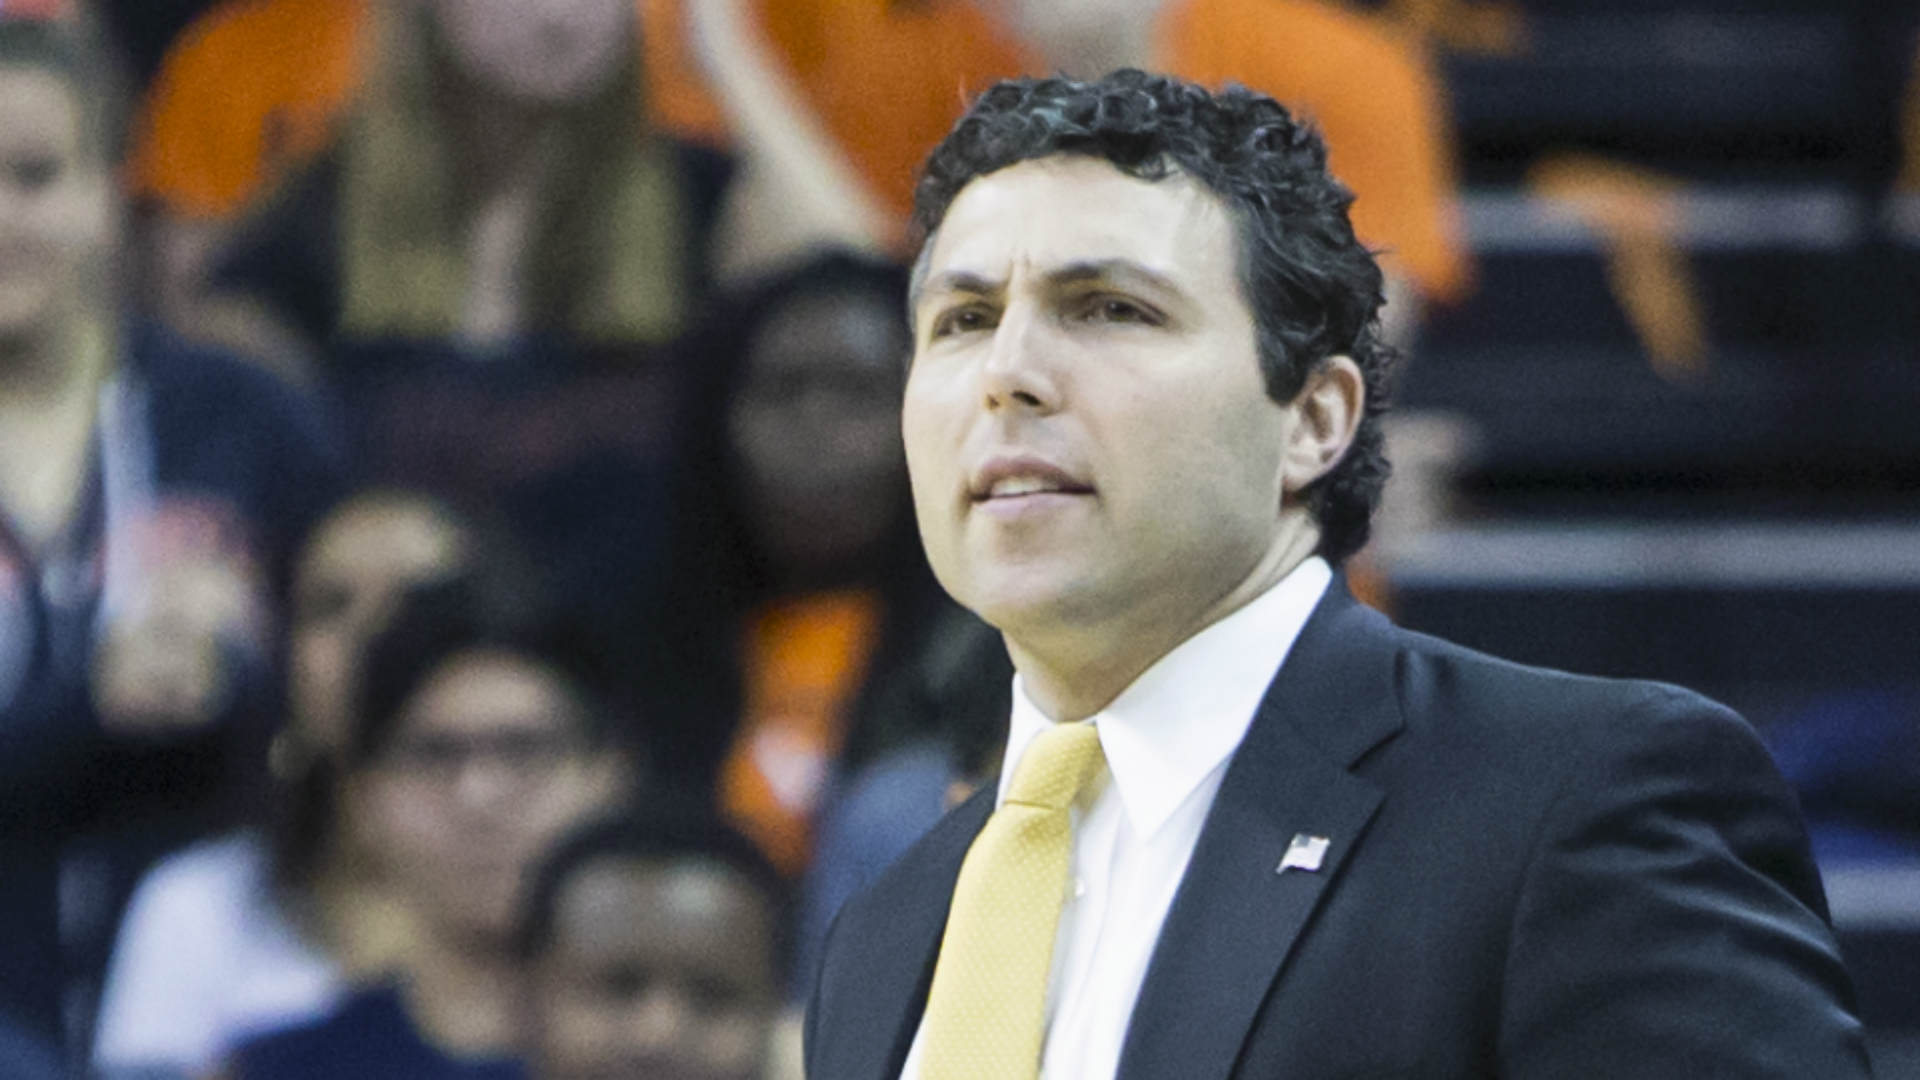 Georgia Tech coach Josh Pastner files defamation lawsuit, alleging extortion and blackmail attempts